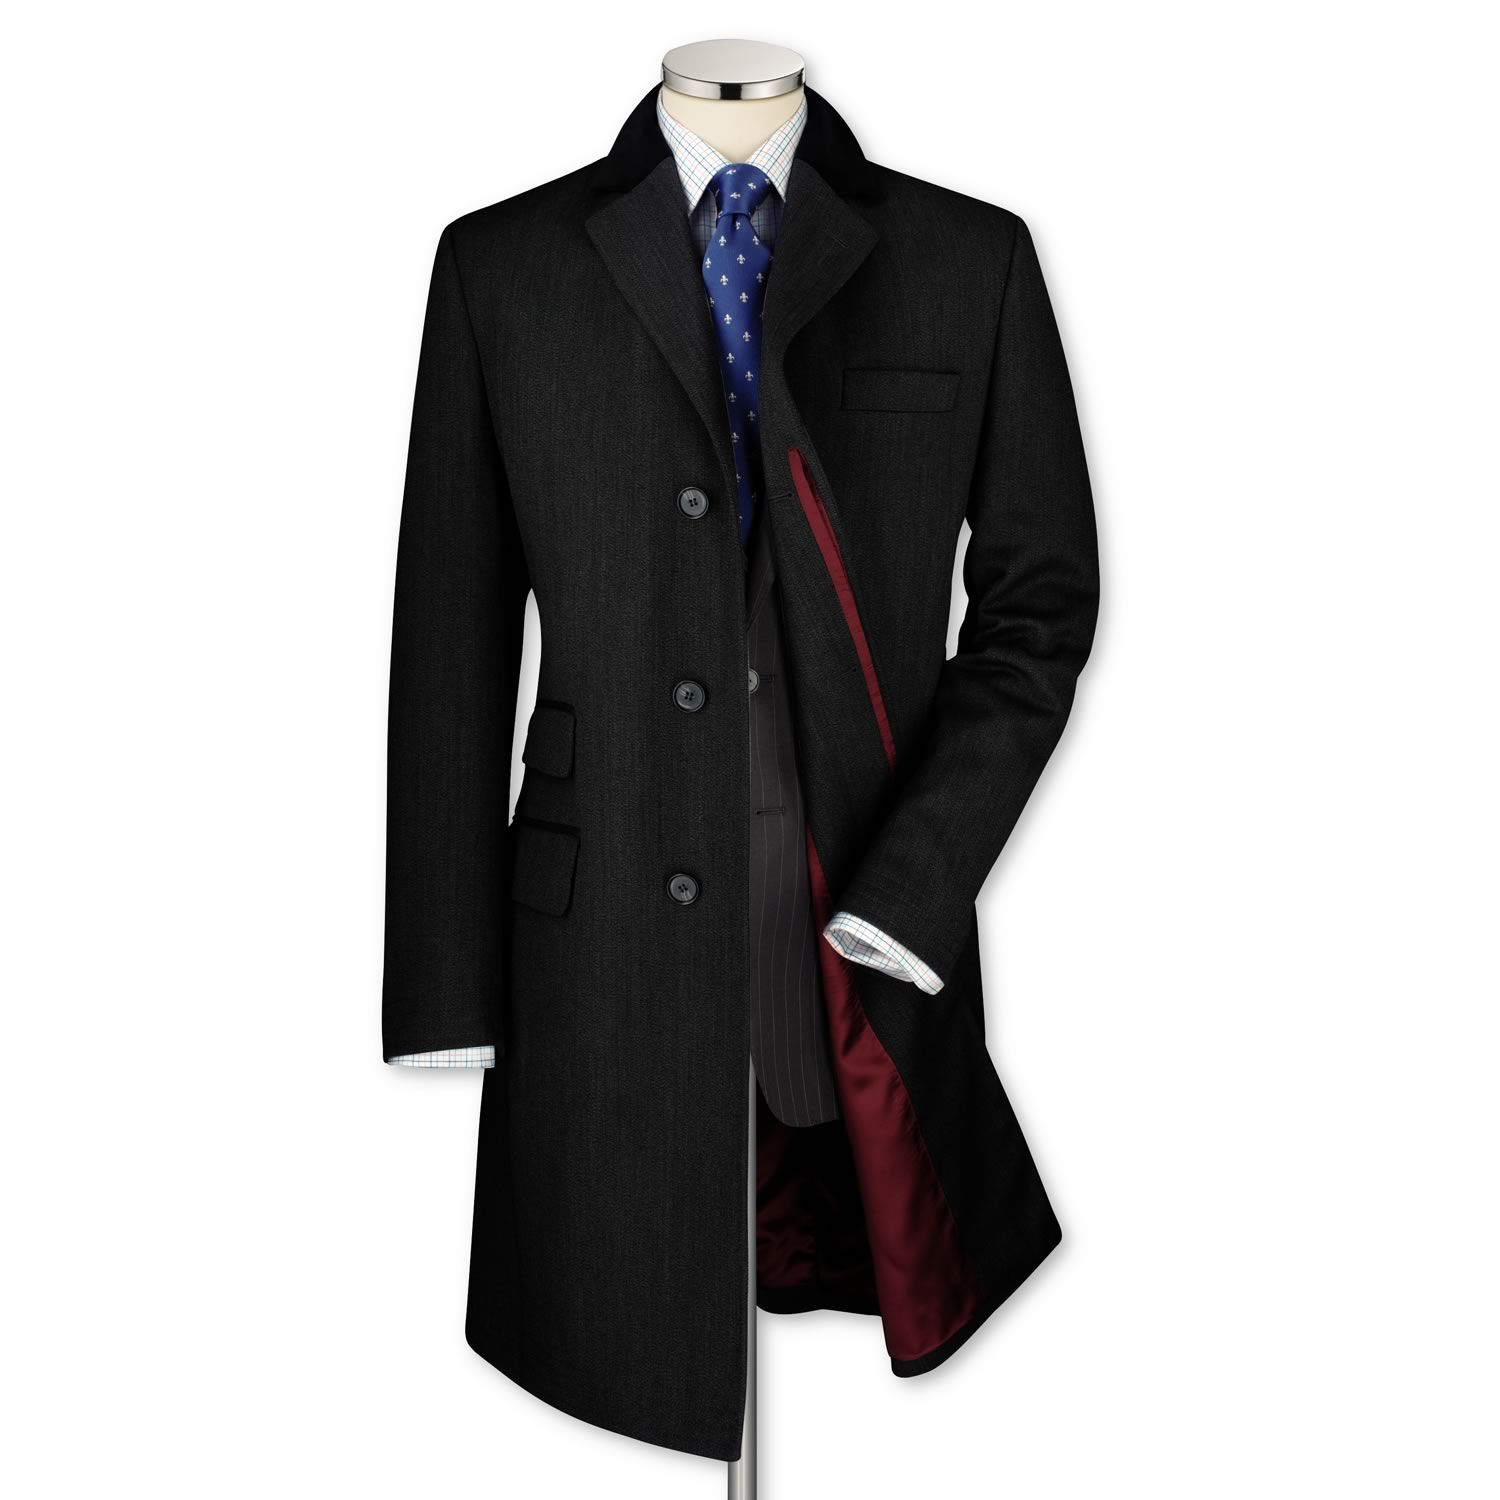 Charcoal covert coat | Men's coats from Charles Tyrwhitt ...